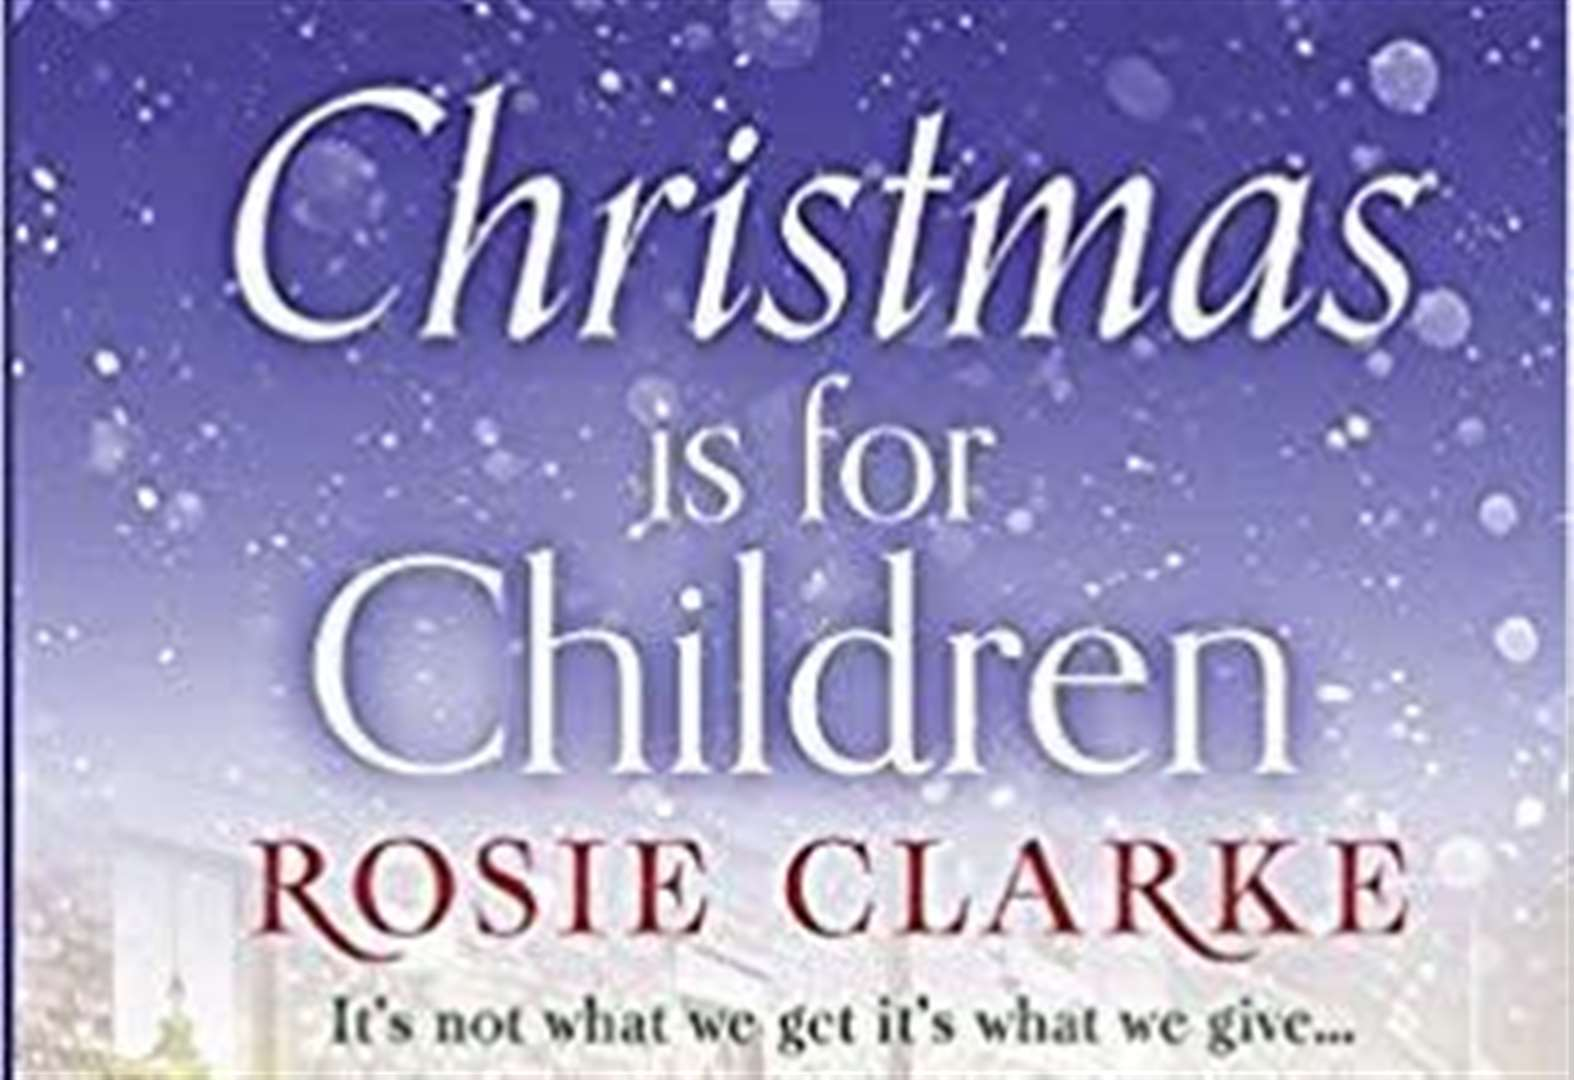 Book of the Week: Christmas is for Children by Rosie Clarke